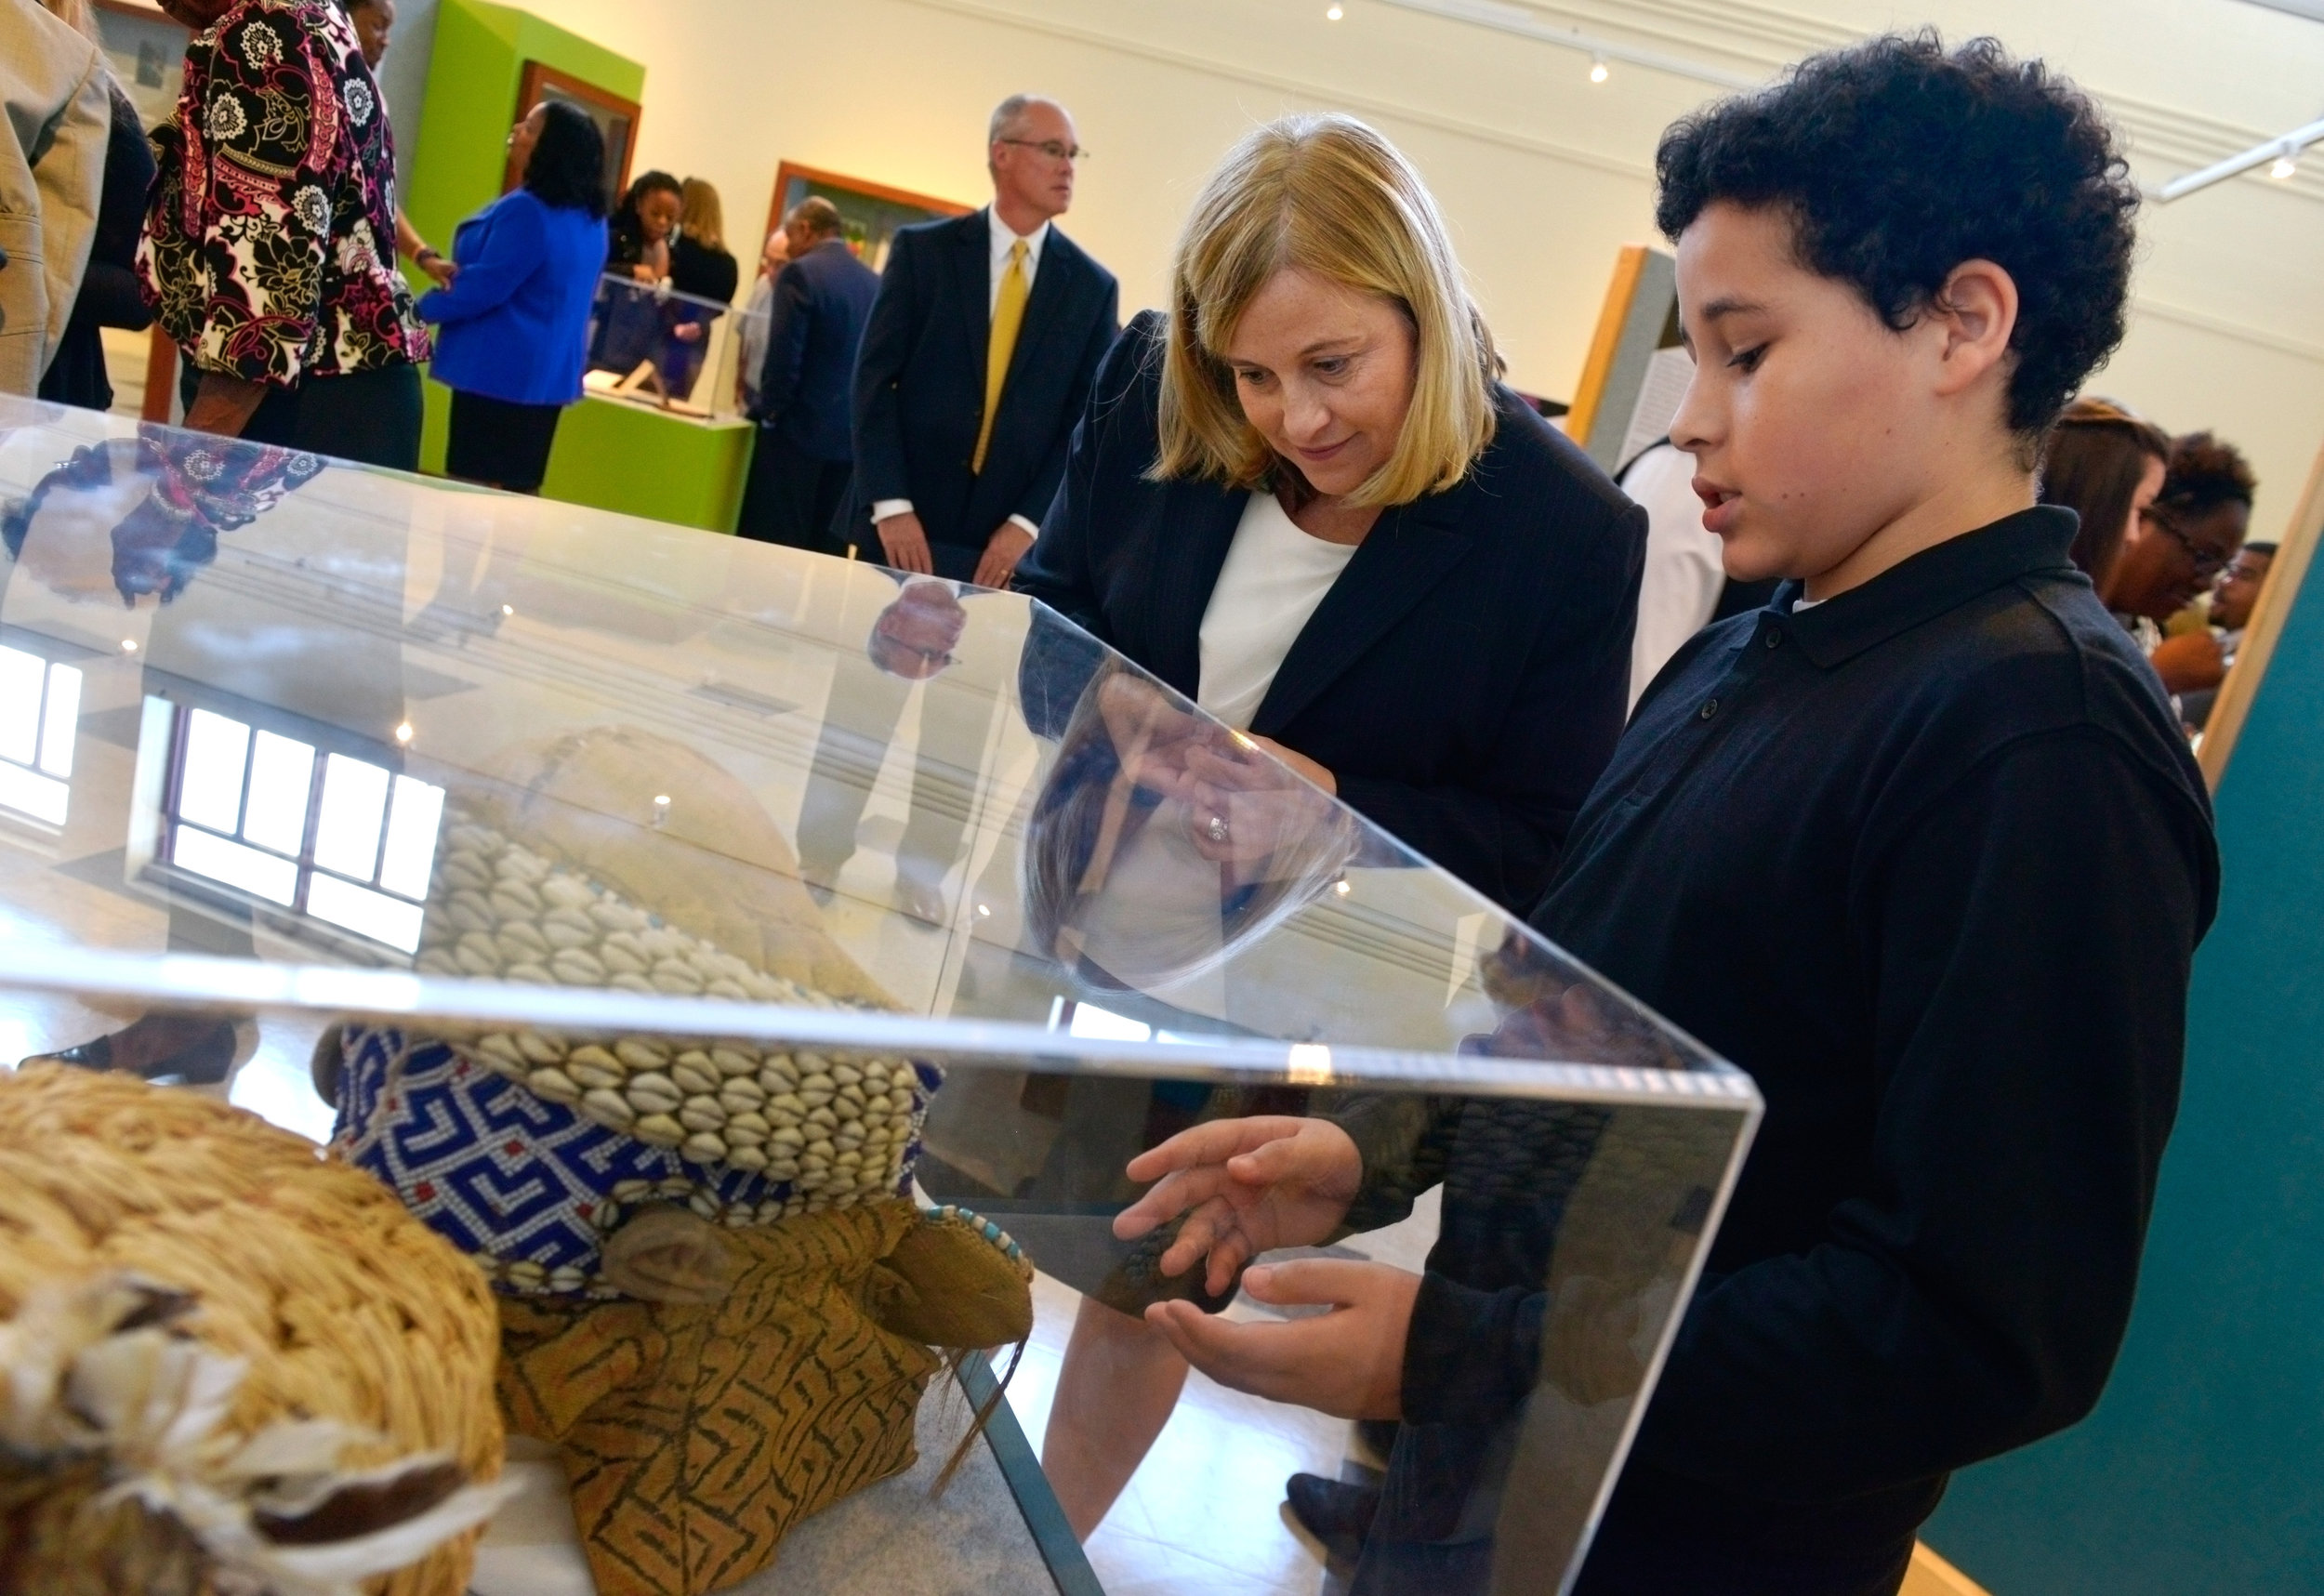 Mayor Megan Barry is given an explanation of an exhibit by a student at John Early Museum Magnet after a ribbon-cutting October 22, 2015 in Nashville, Tenn.